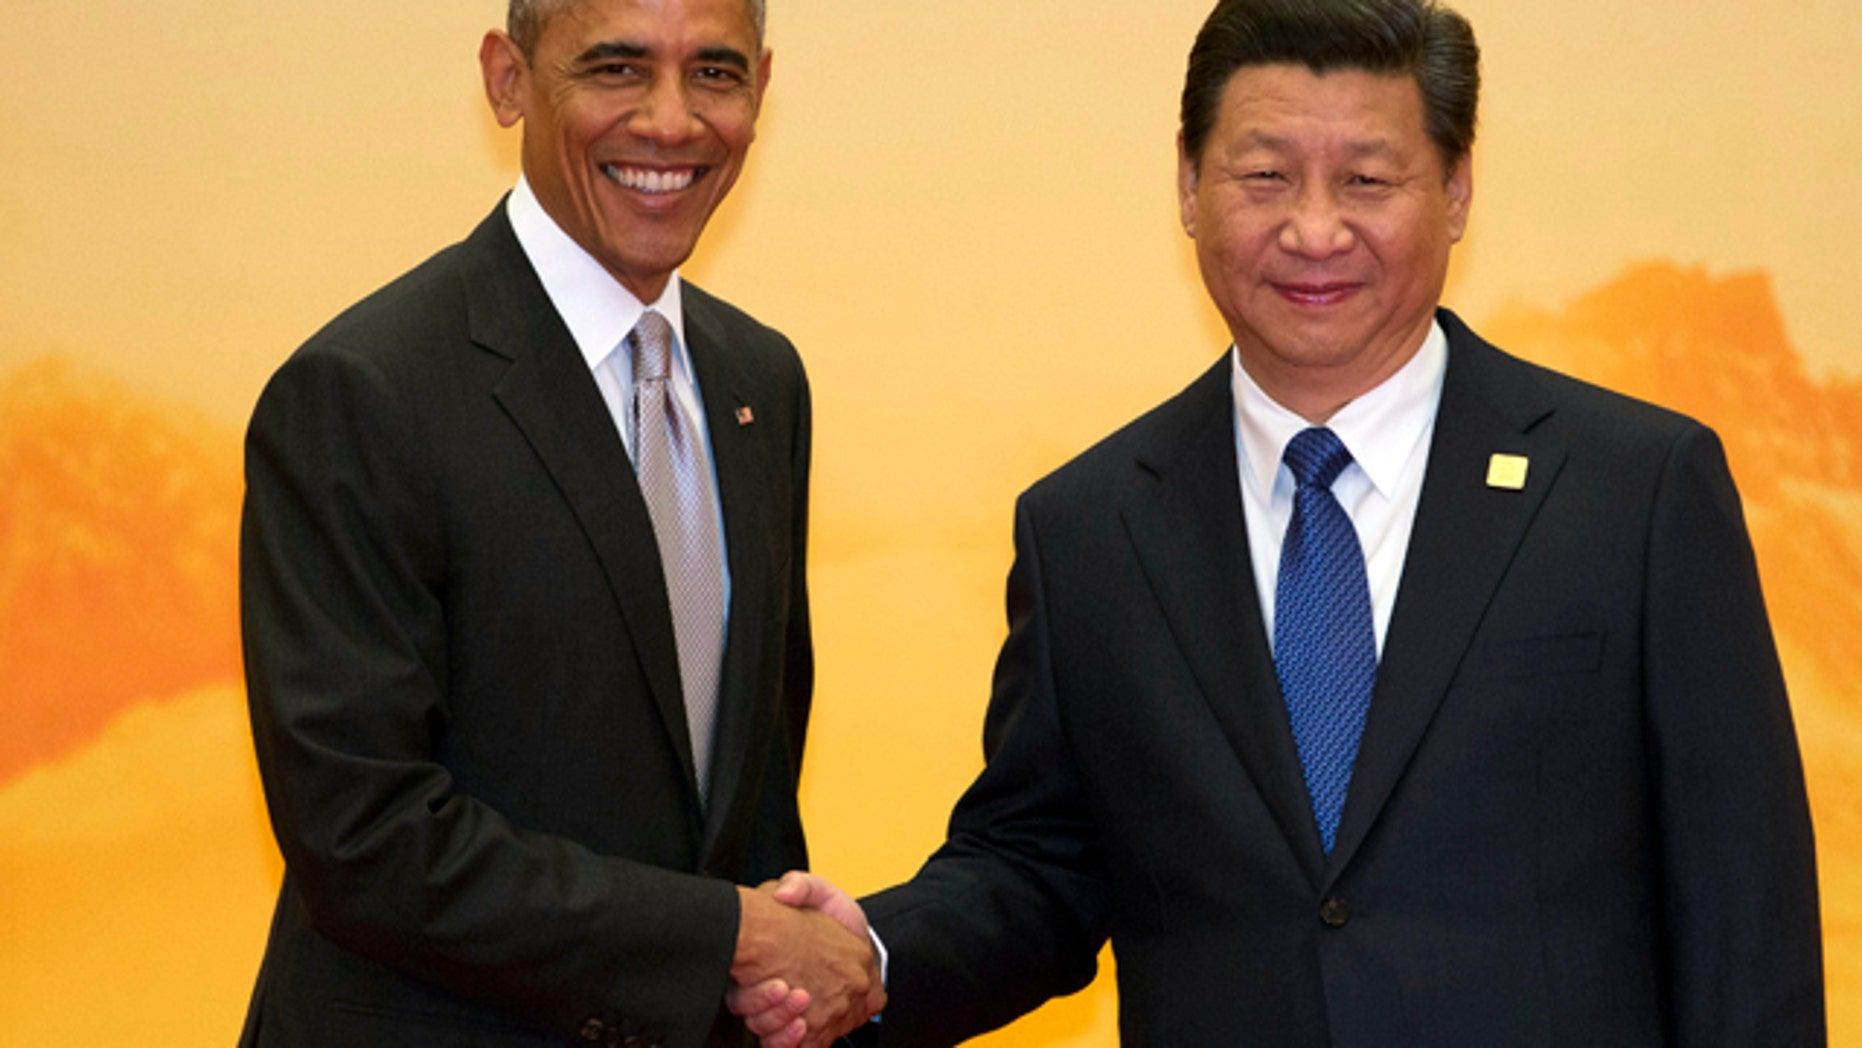 November 11, 2014: U.S. President Barack Obama, left, shakes hands with Chinese President Xi Jinping during a welcome ceremony for the Asia-Pacific Economic Cooperation (APEC) summit at the International Convention Center in Yanqi Lake, Beijing. (AP Photo/Ng Han Guan)